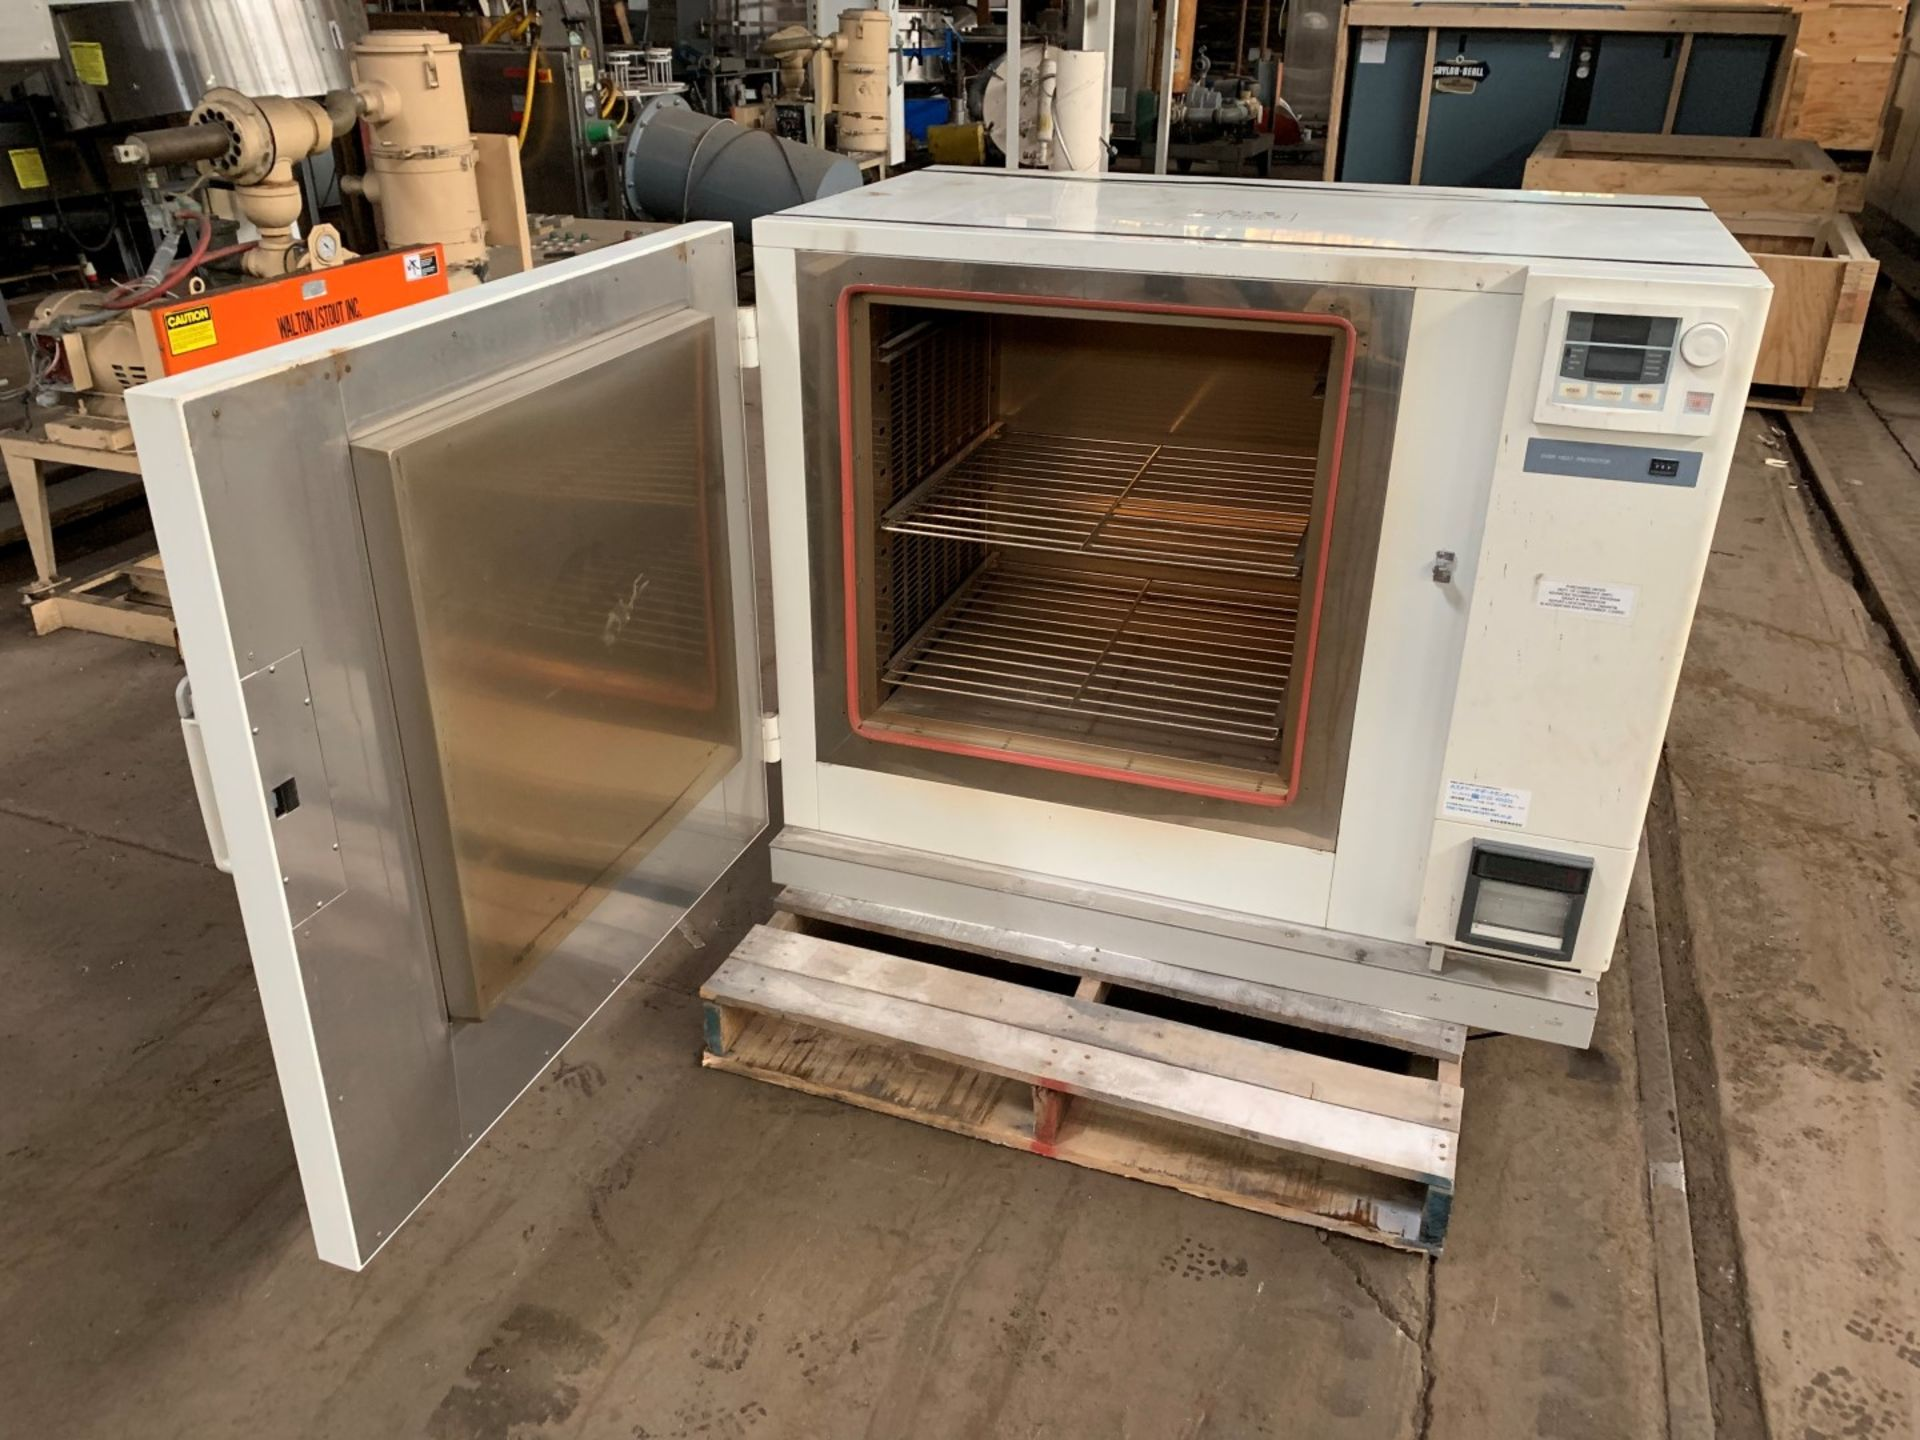 Lot 59 - Yamato DH62 Programmable Convection Oven